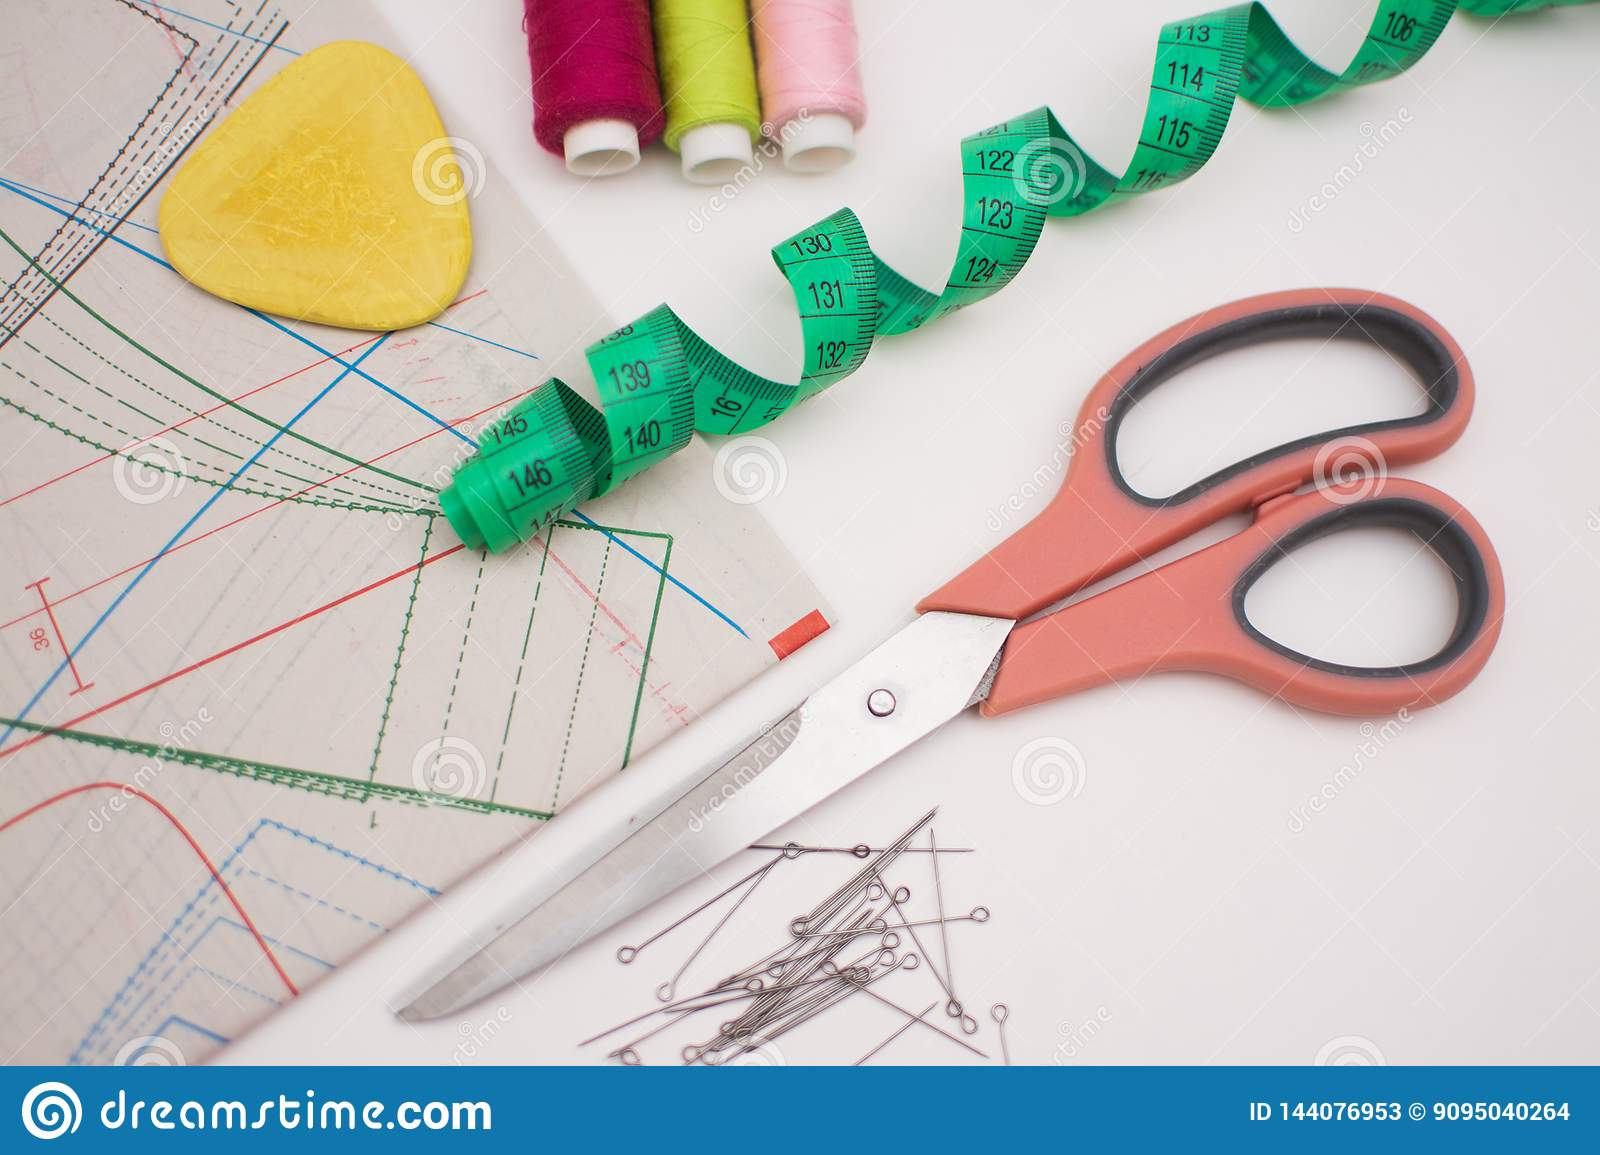 Multicolored thread coils and measuring tape on white background.